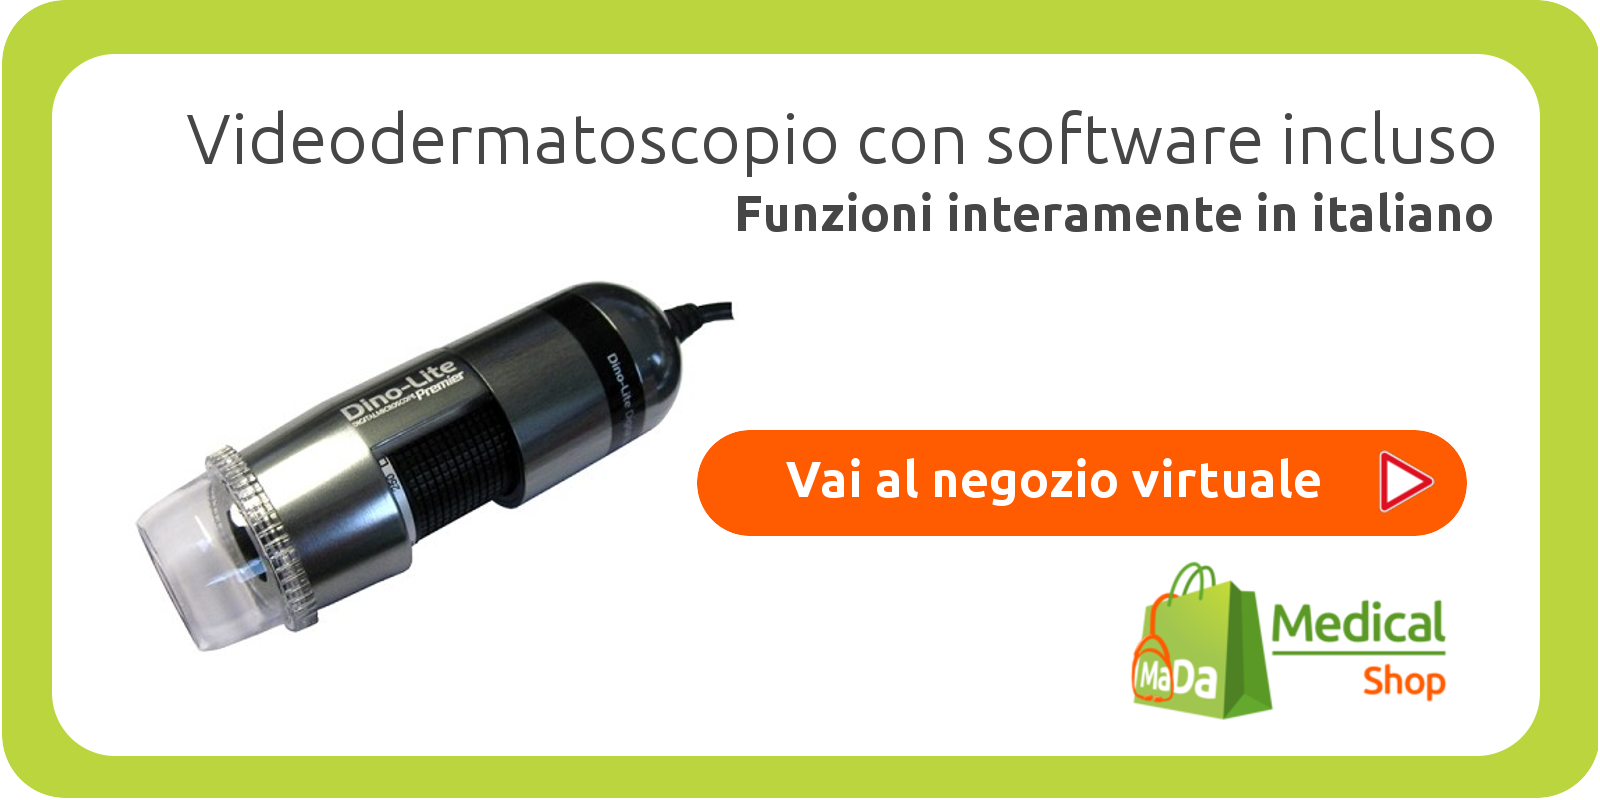 videodermatoscopio in offerta